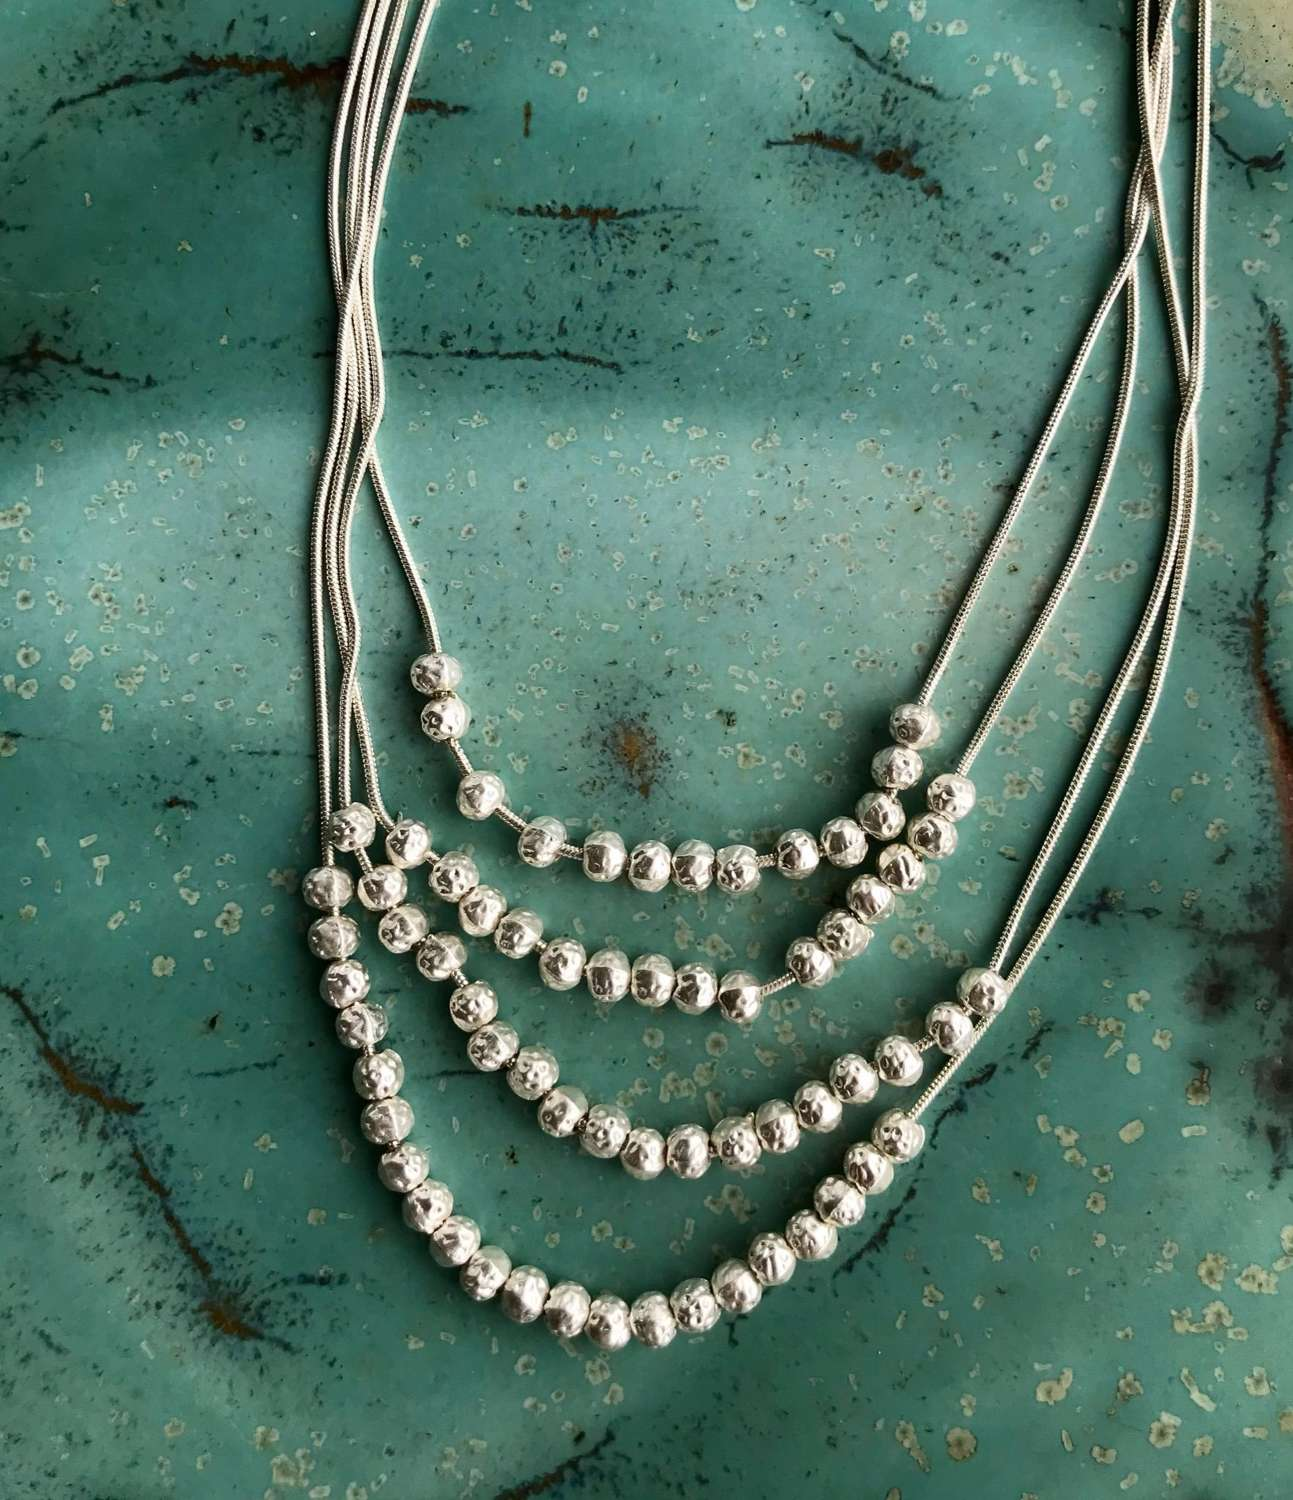 Layered silver ball necklace